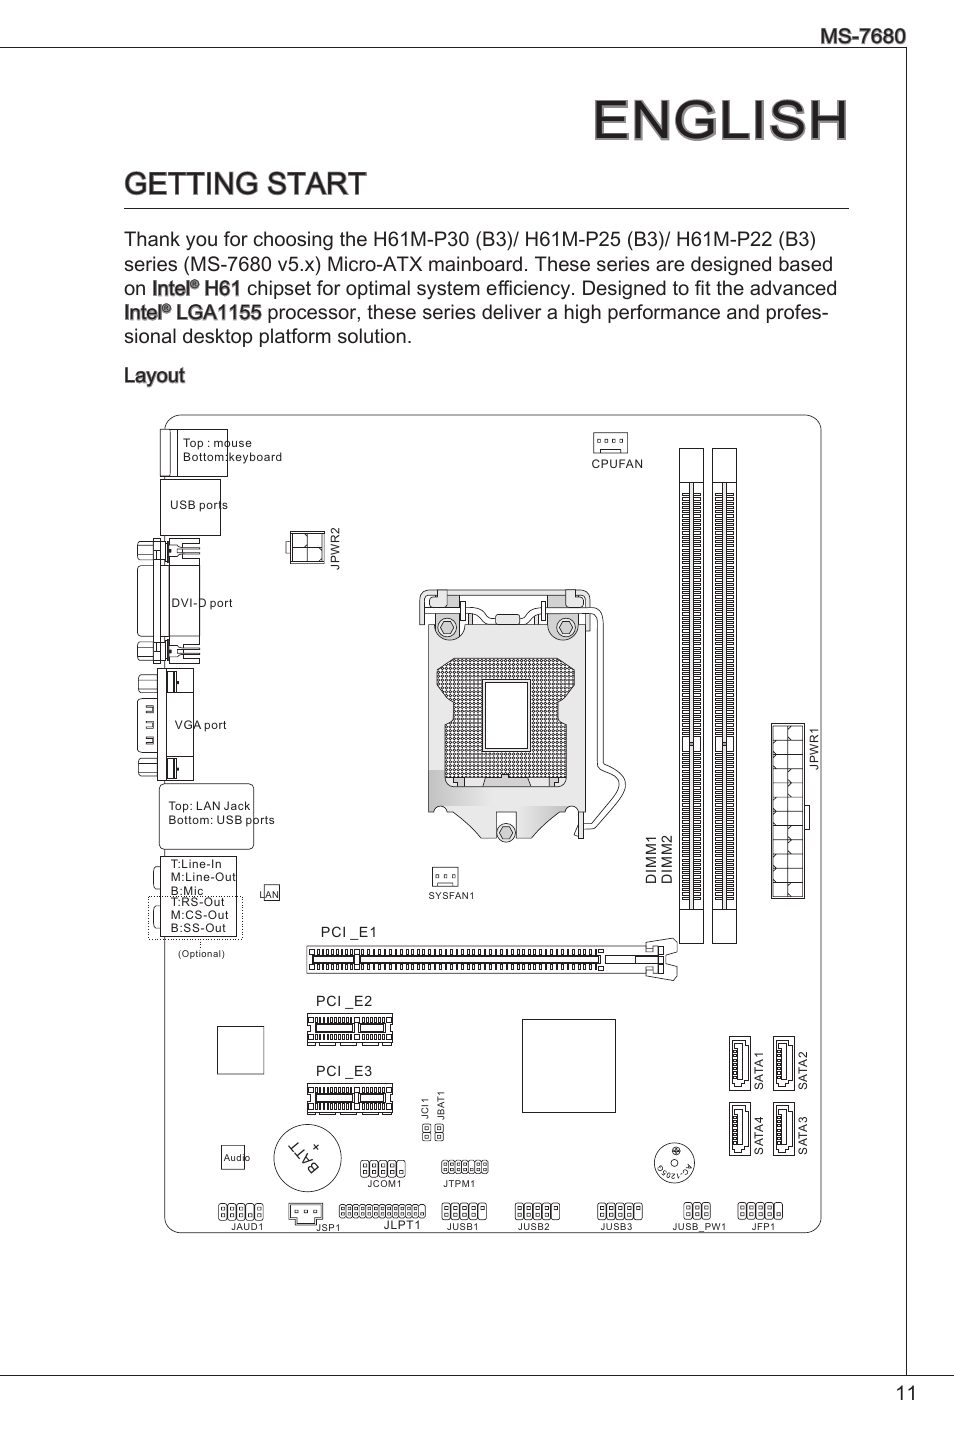 wiring diagram for 1996 club car 48 volt p25 wiring diagram english, getting start, ms-7680 | msi h61m-p25 (b3) user ...